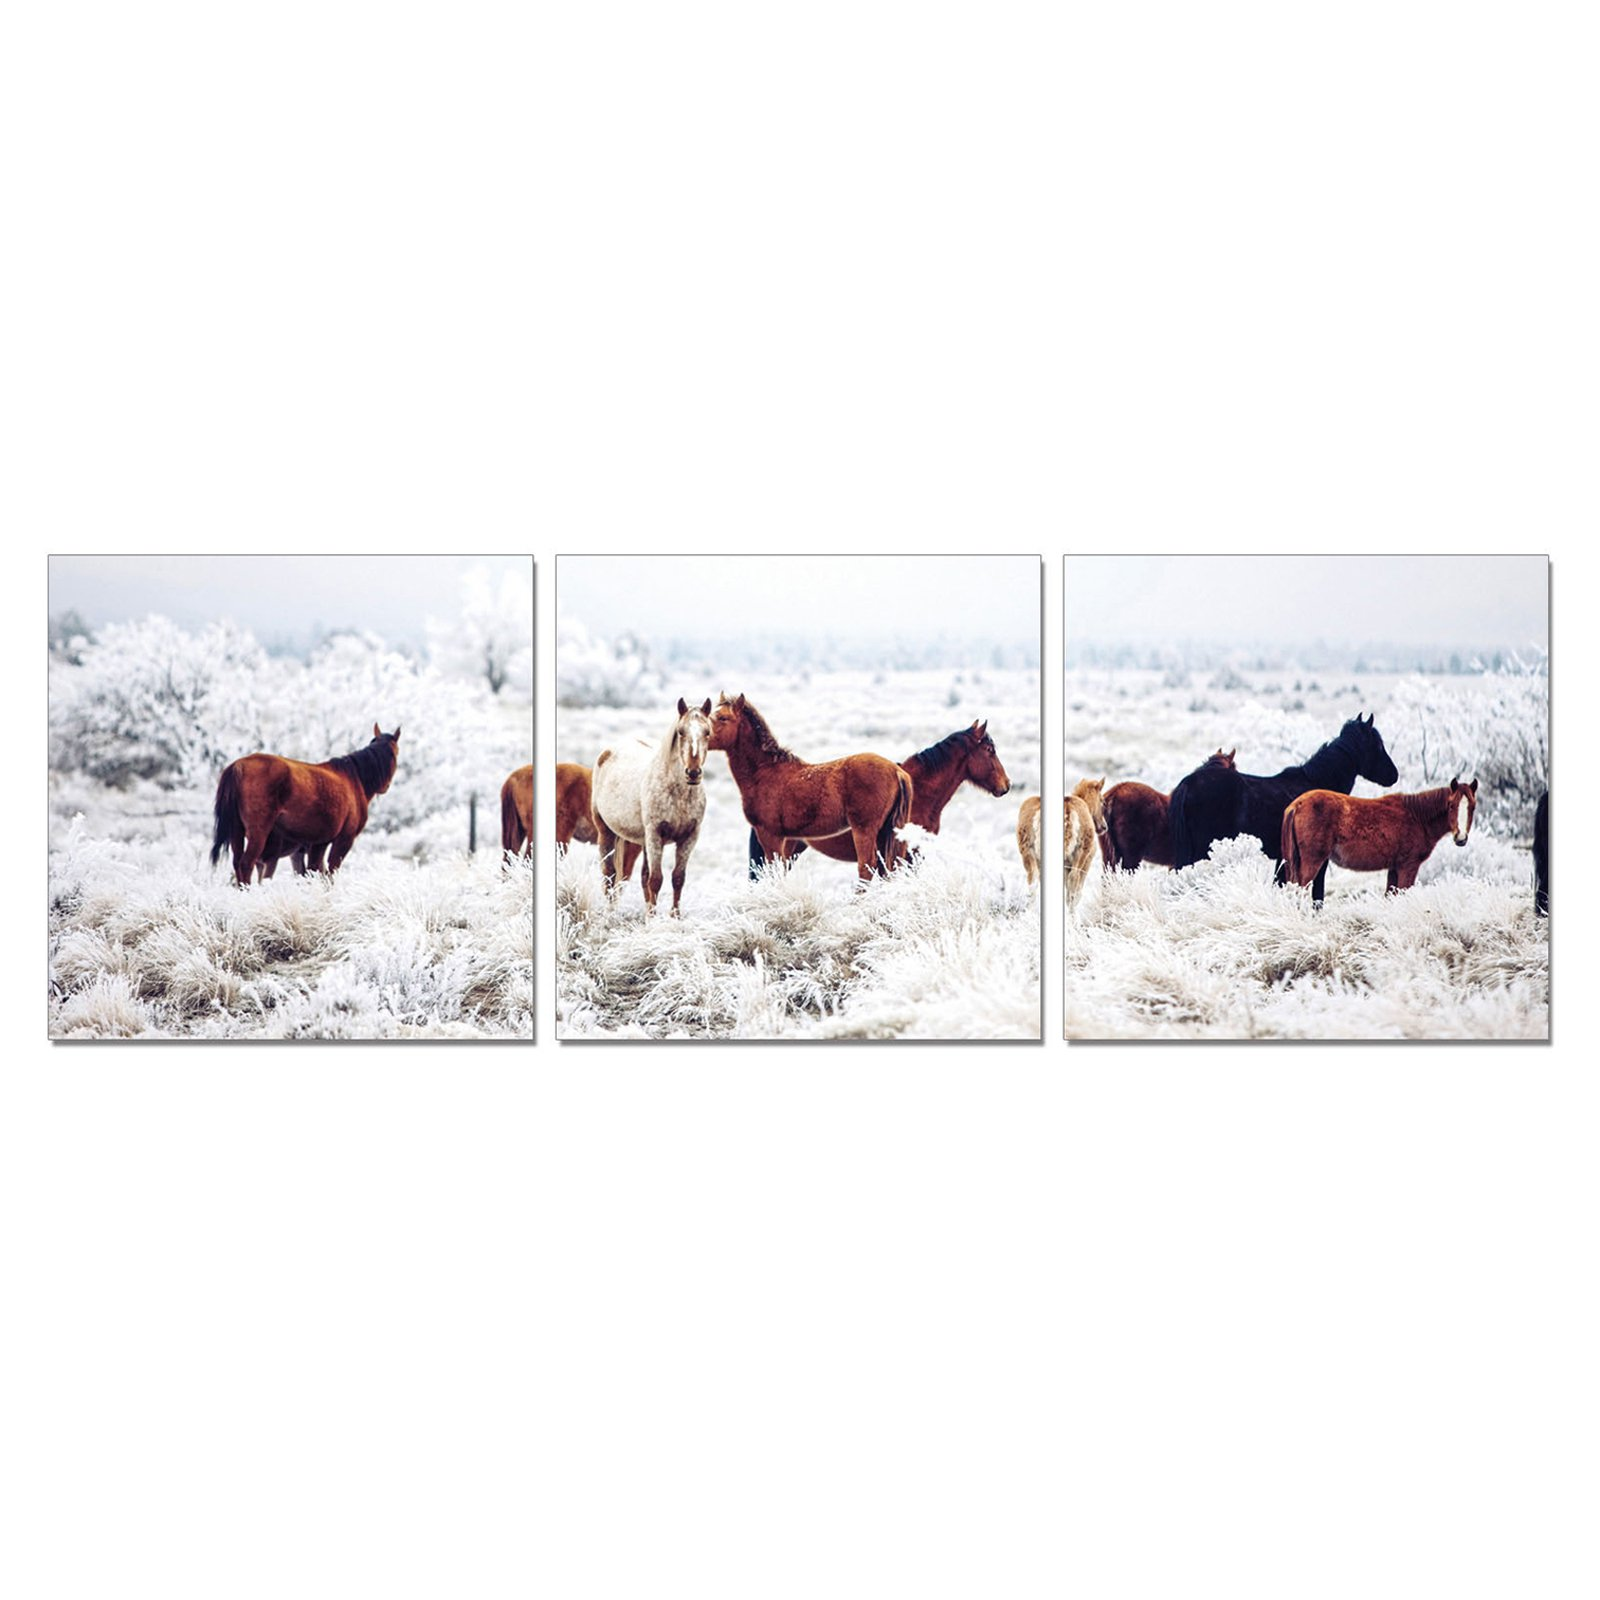 Furinno SeniA Horses on Plains 3-Panel MDF Framed Photography Triptych Print, 48 x 16-in